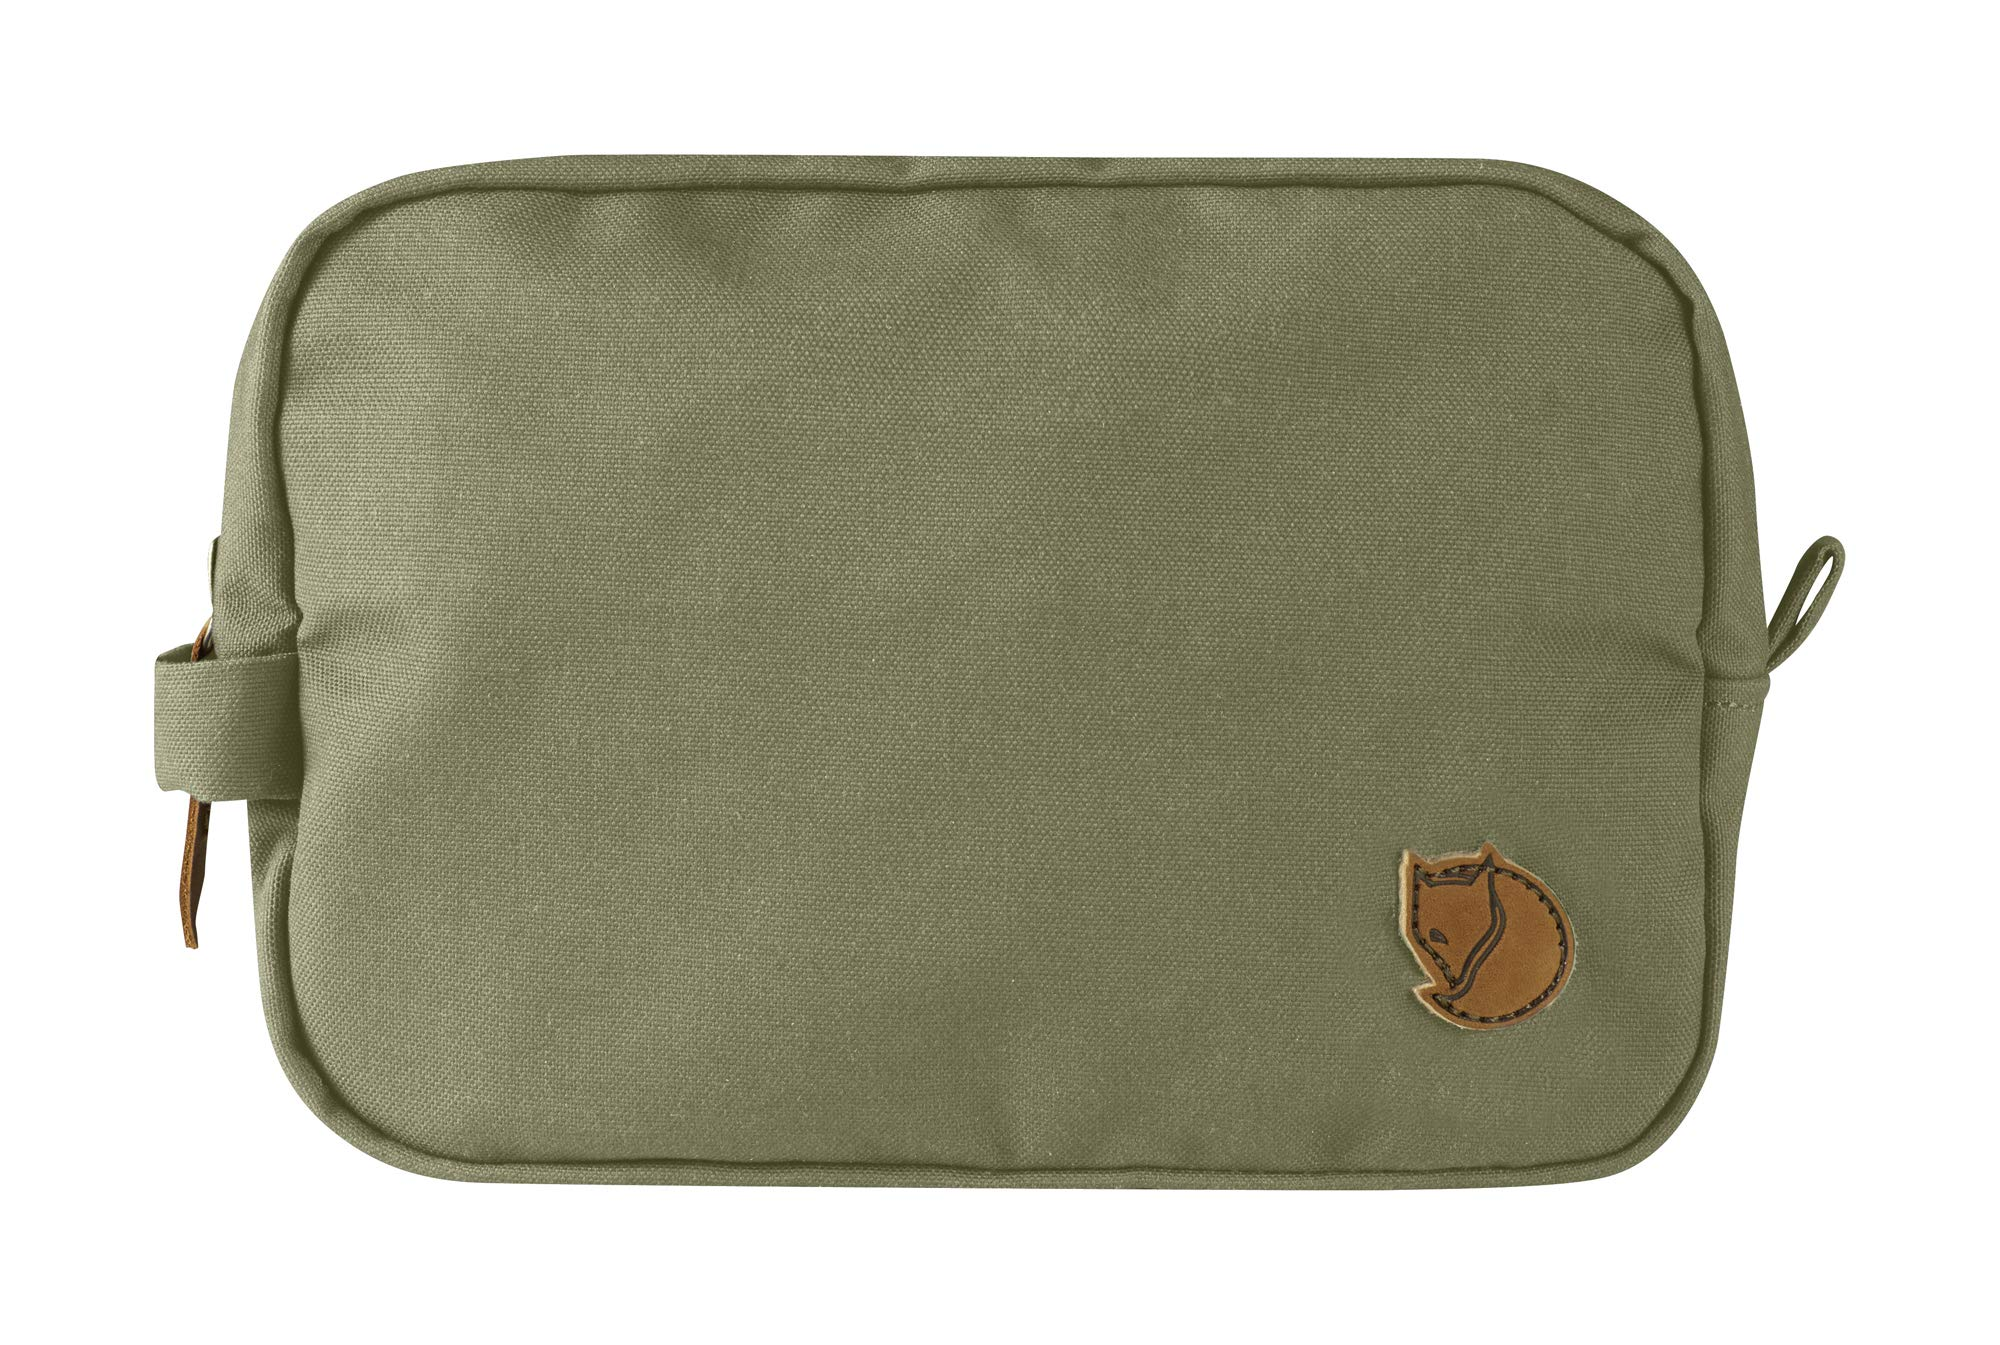 Fjallraven - Gear Bag, Green by Fjallraven